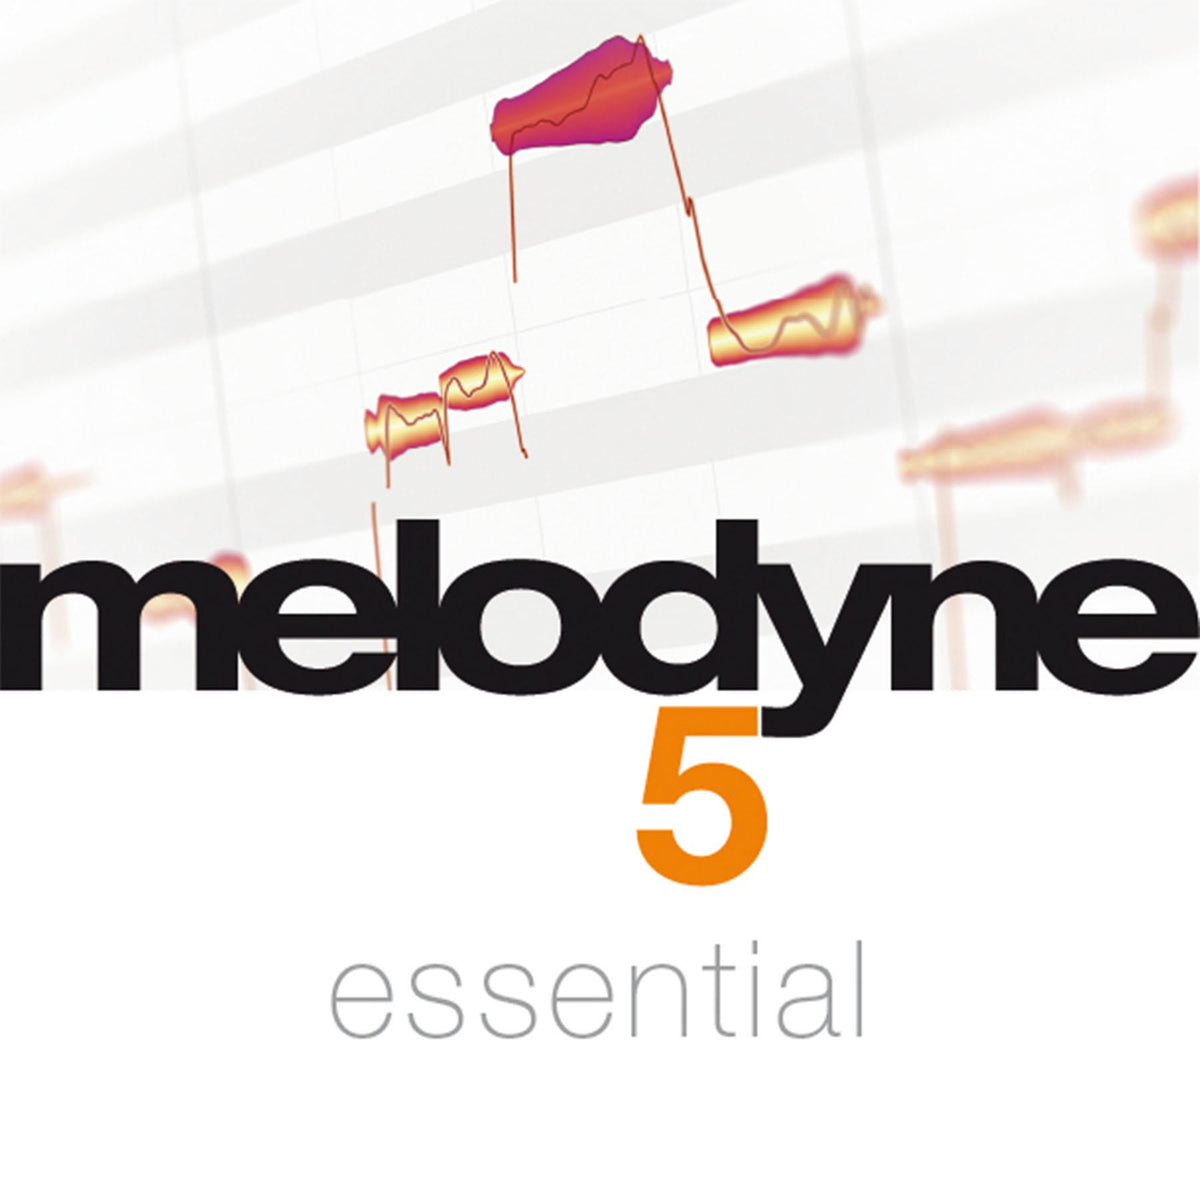 Celemony Melodyne 5 Essential - Digital Download